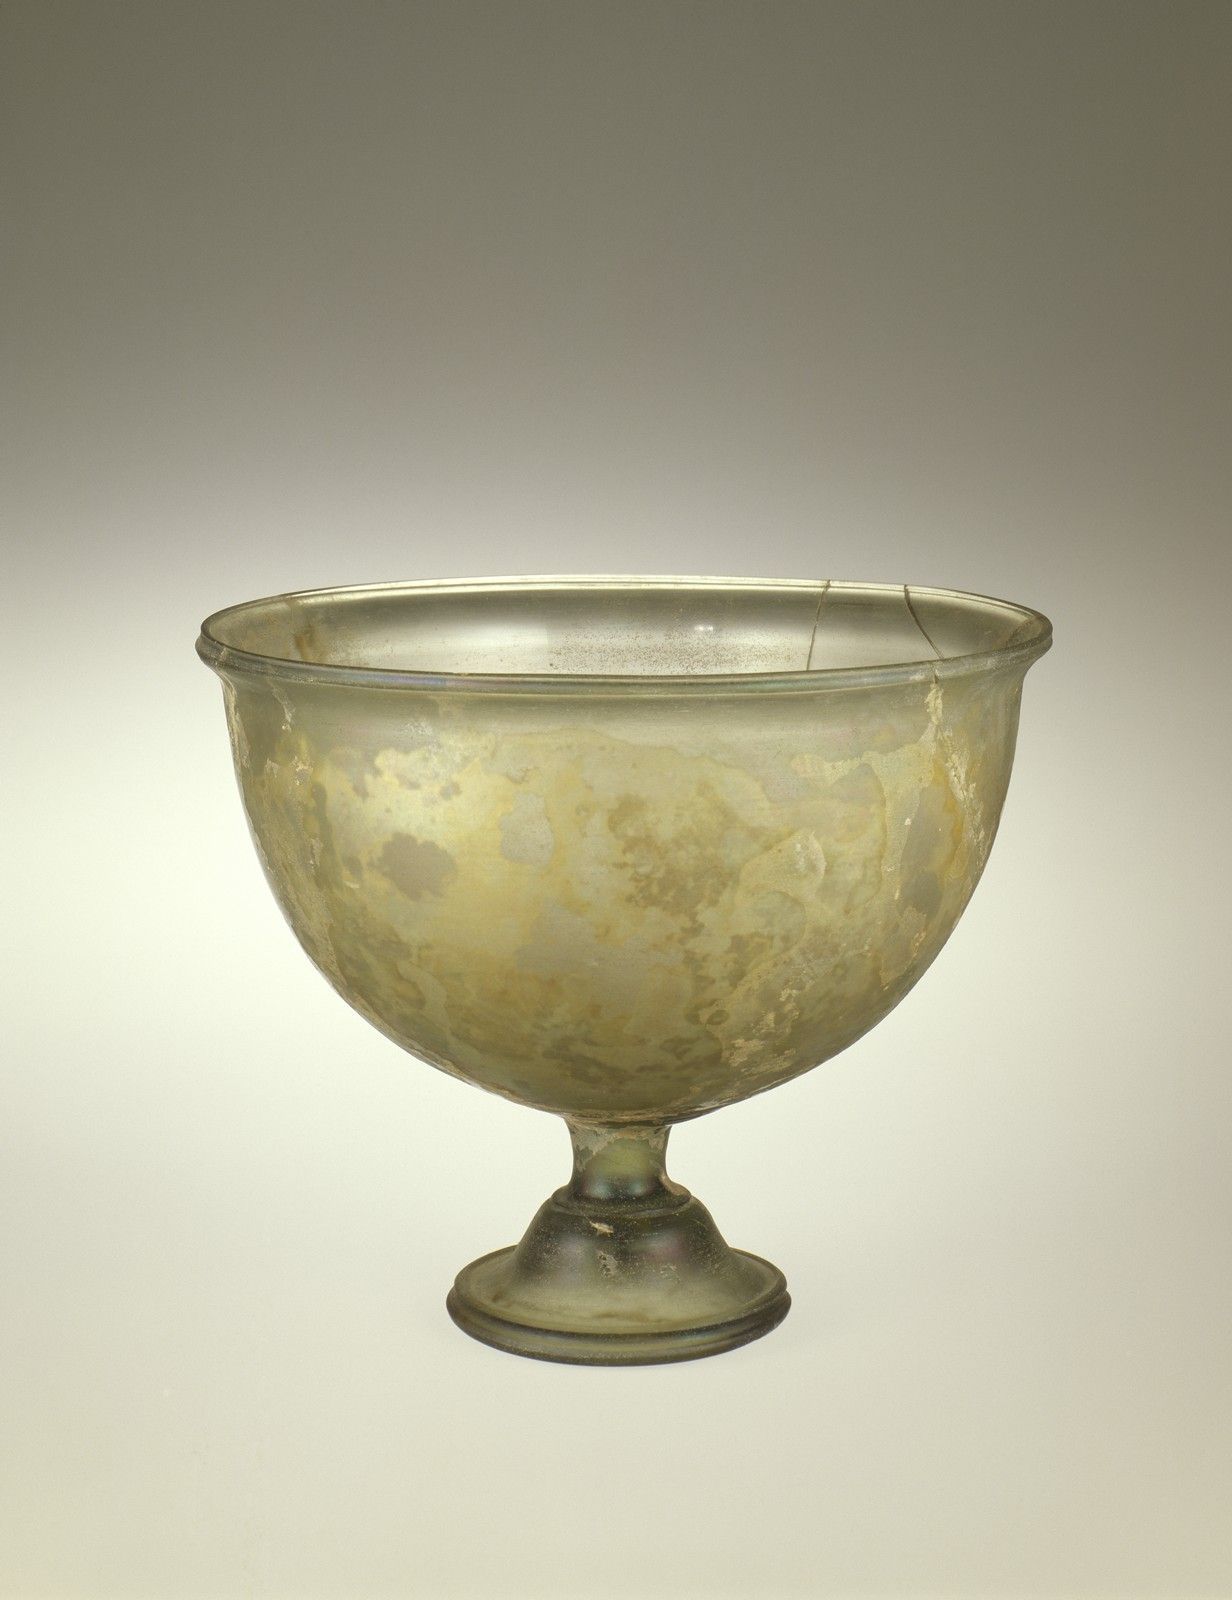 Mixing Bowl, about 299-230 BC